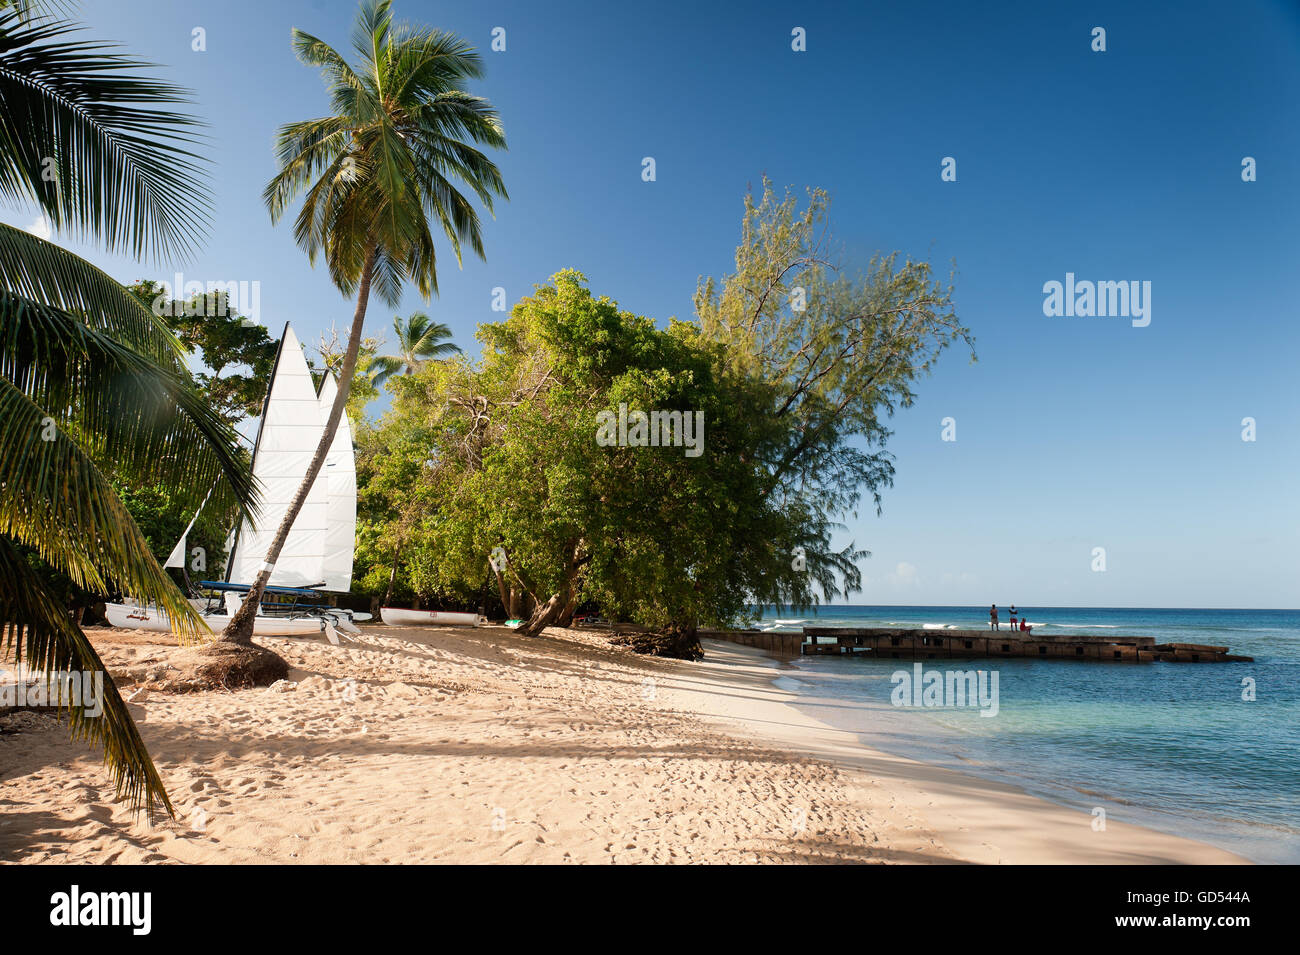 Catamaran under palm tree on beach in Barbados, West Indies - Stock Image